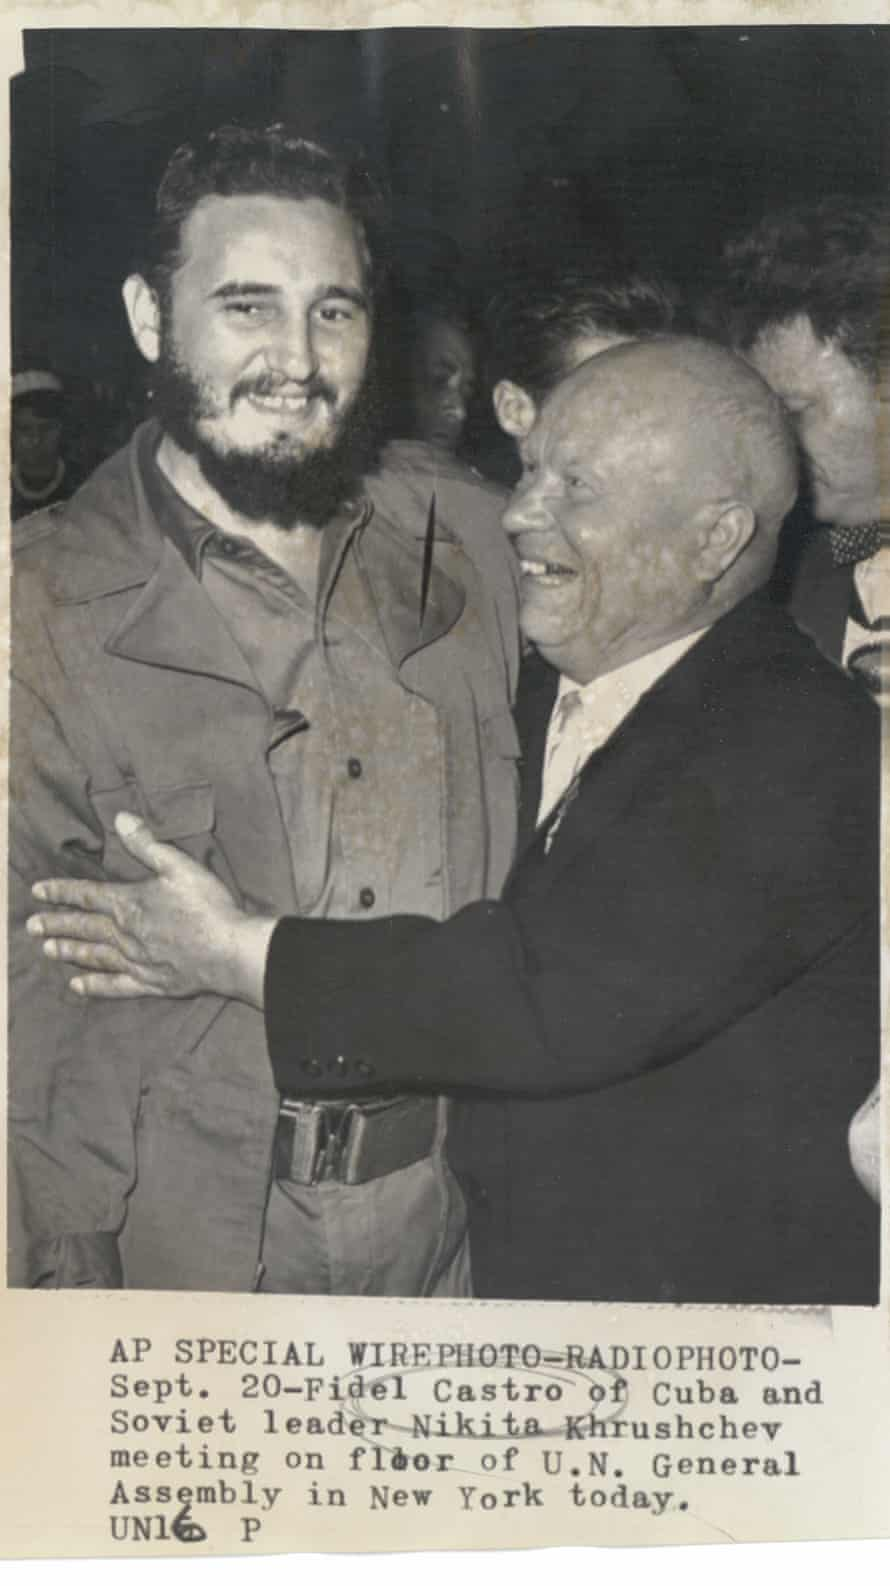 Fidel Castro and Nikita Khrushchev meeting at UN General Assembly, 1960